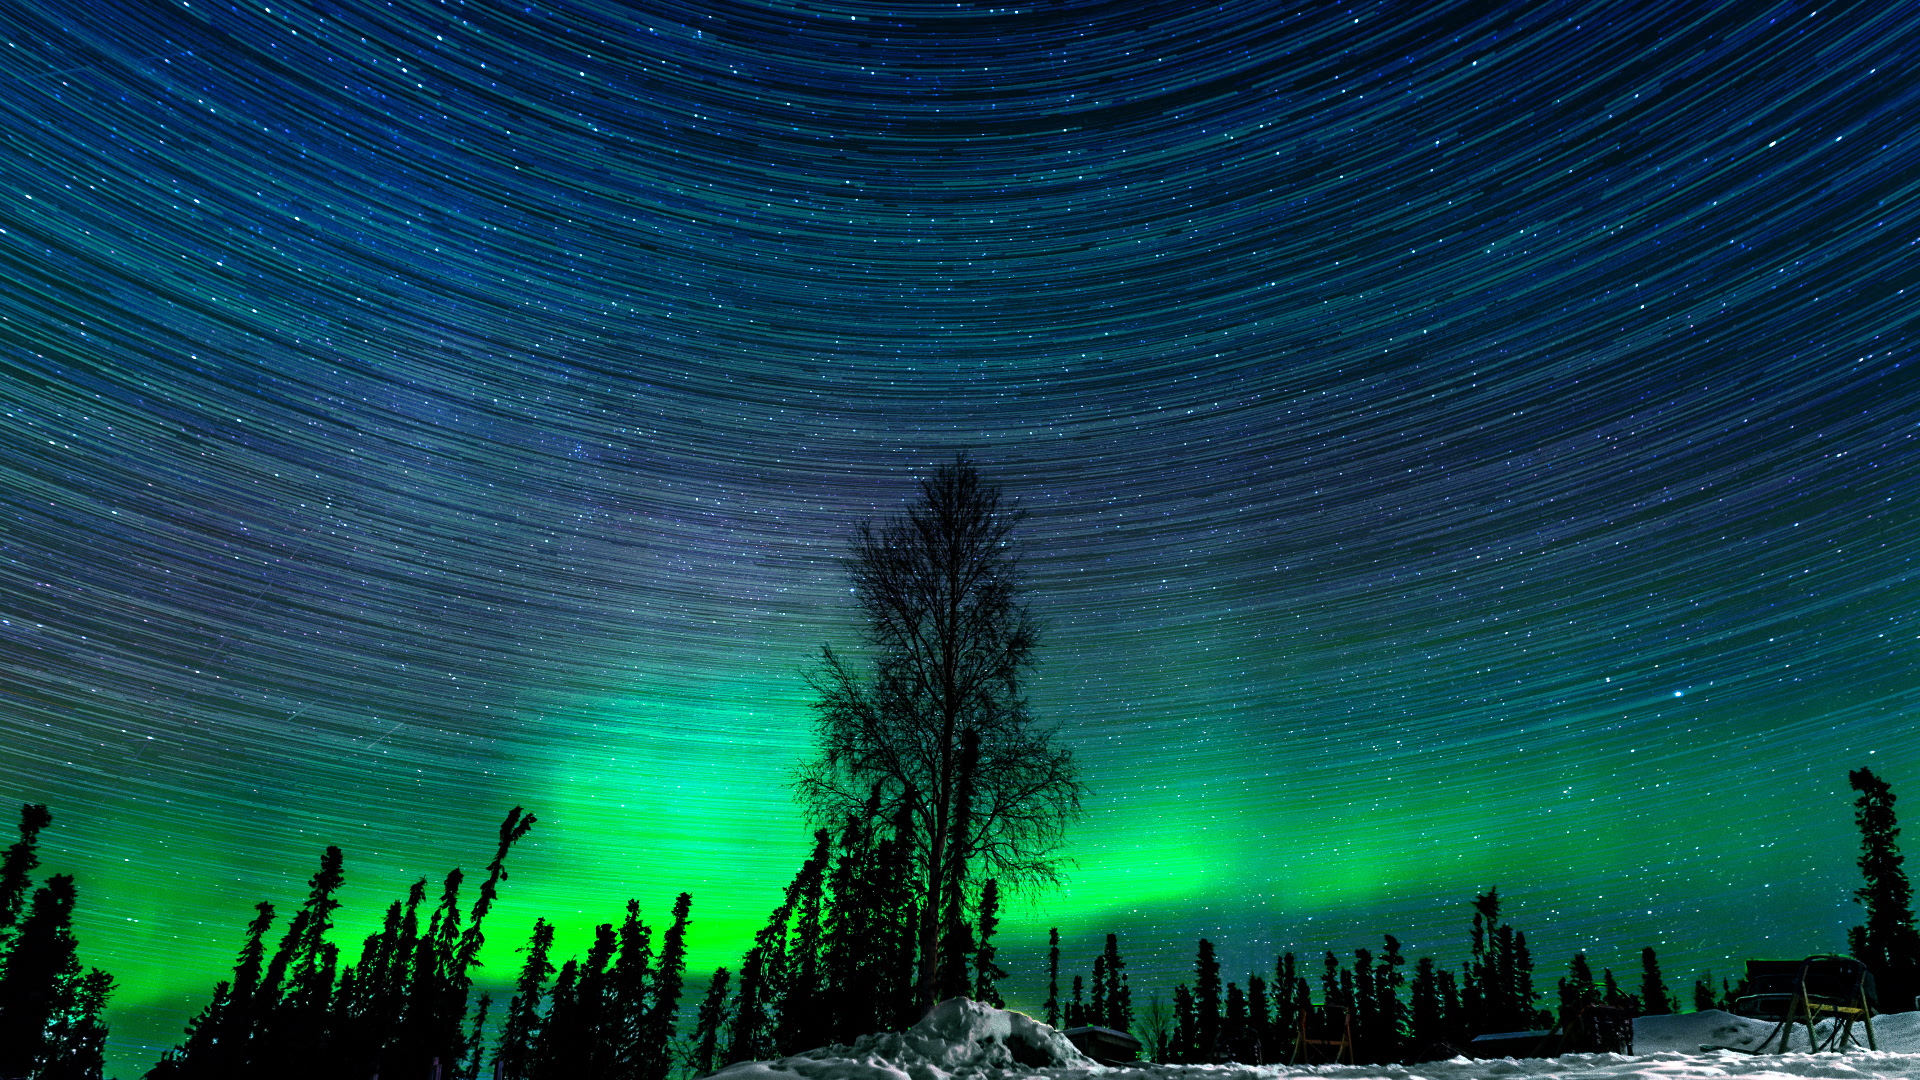 northern lights wallpapers high quality download free. Black Bedroom Furniture Sets. Home Design Ideas